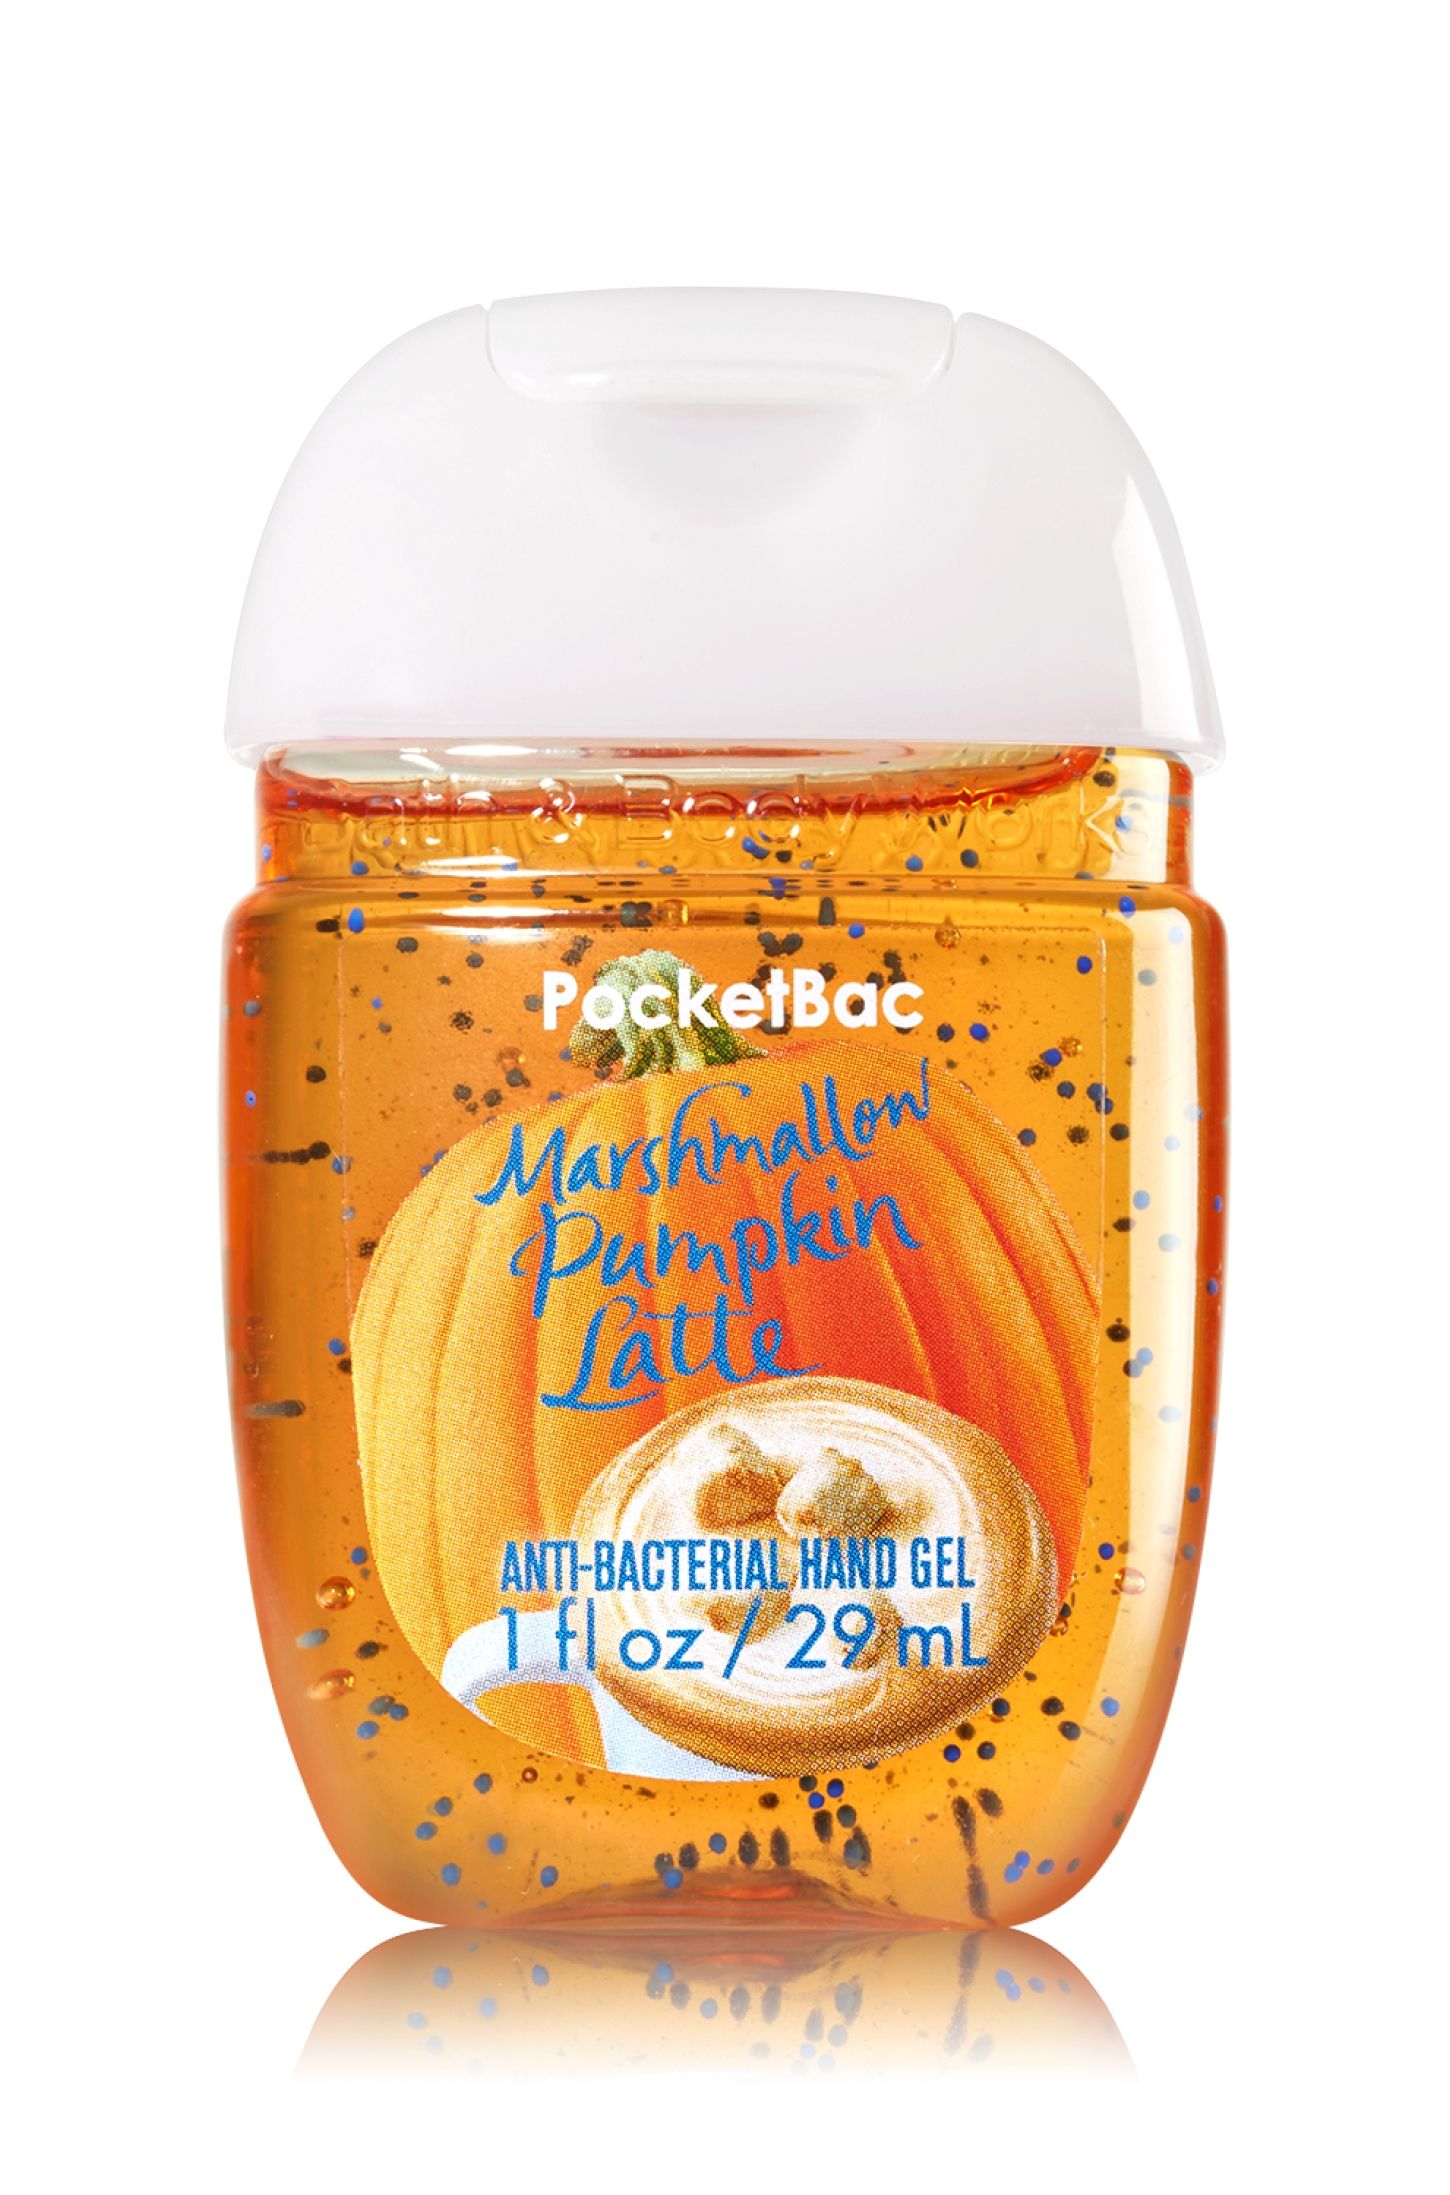 Marshmallow Pumpkin Latte Pocketbac Sanitizing Hand Gel Soap